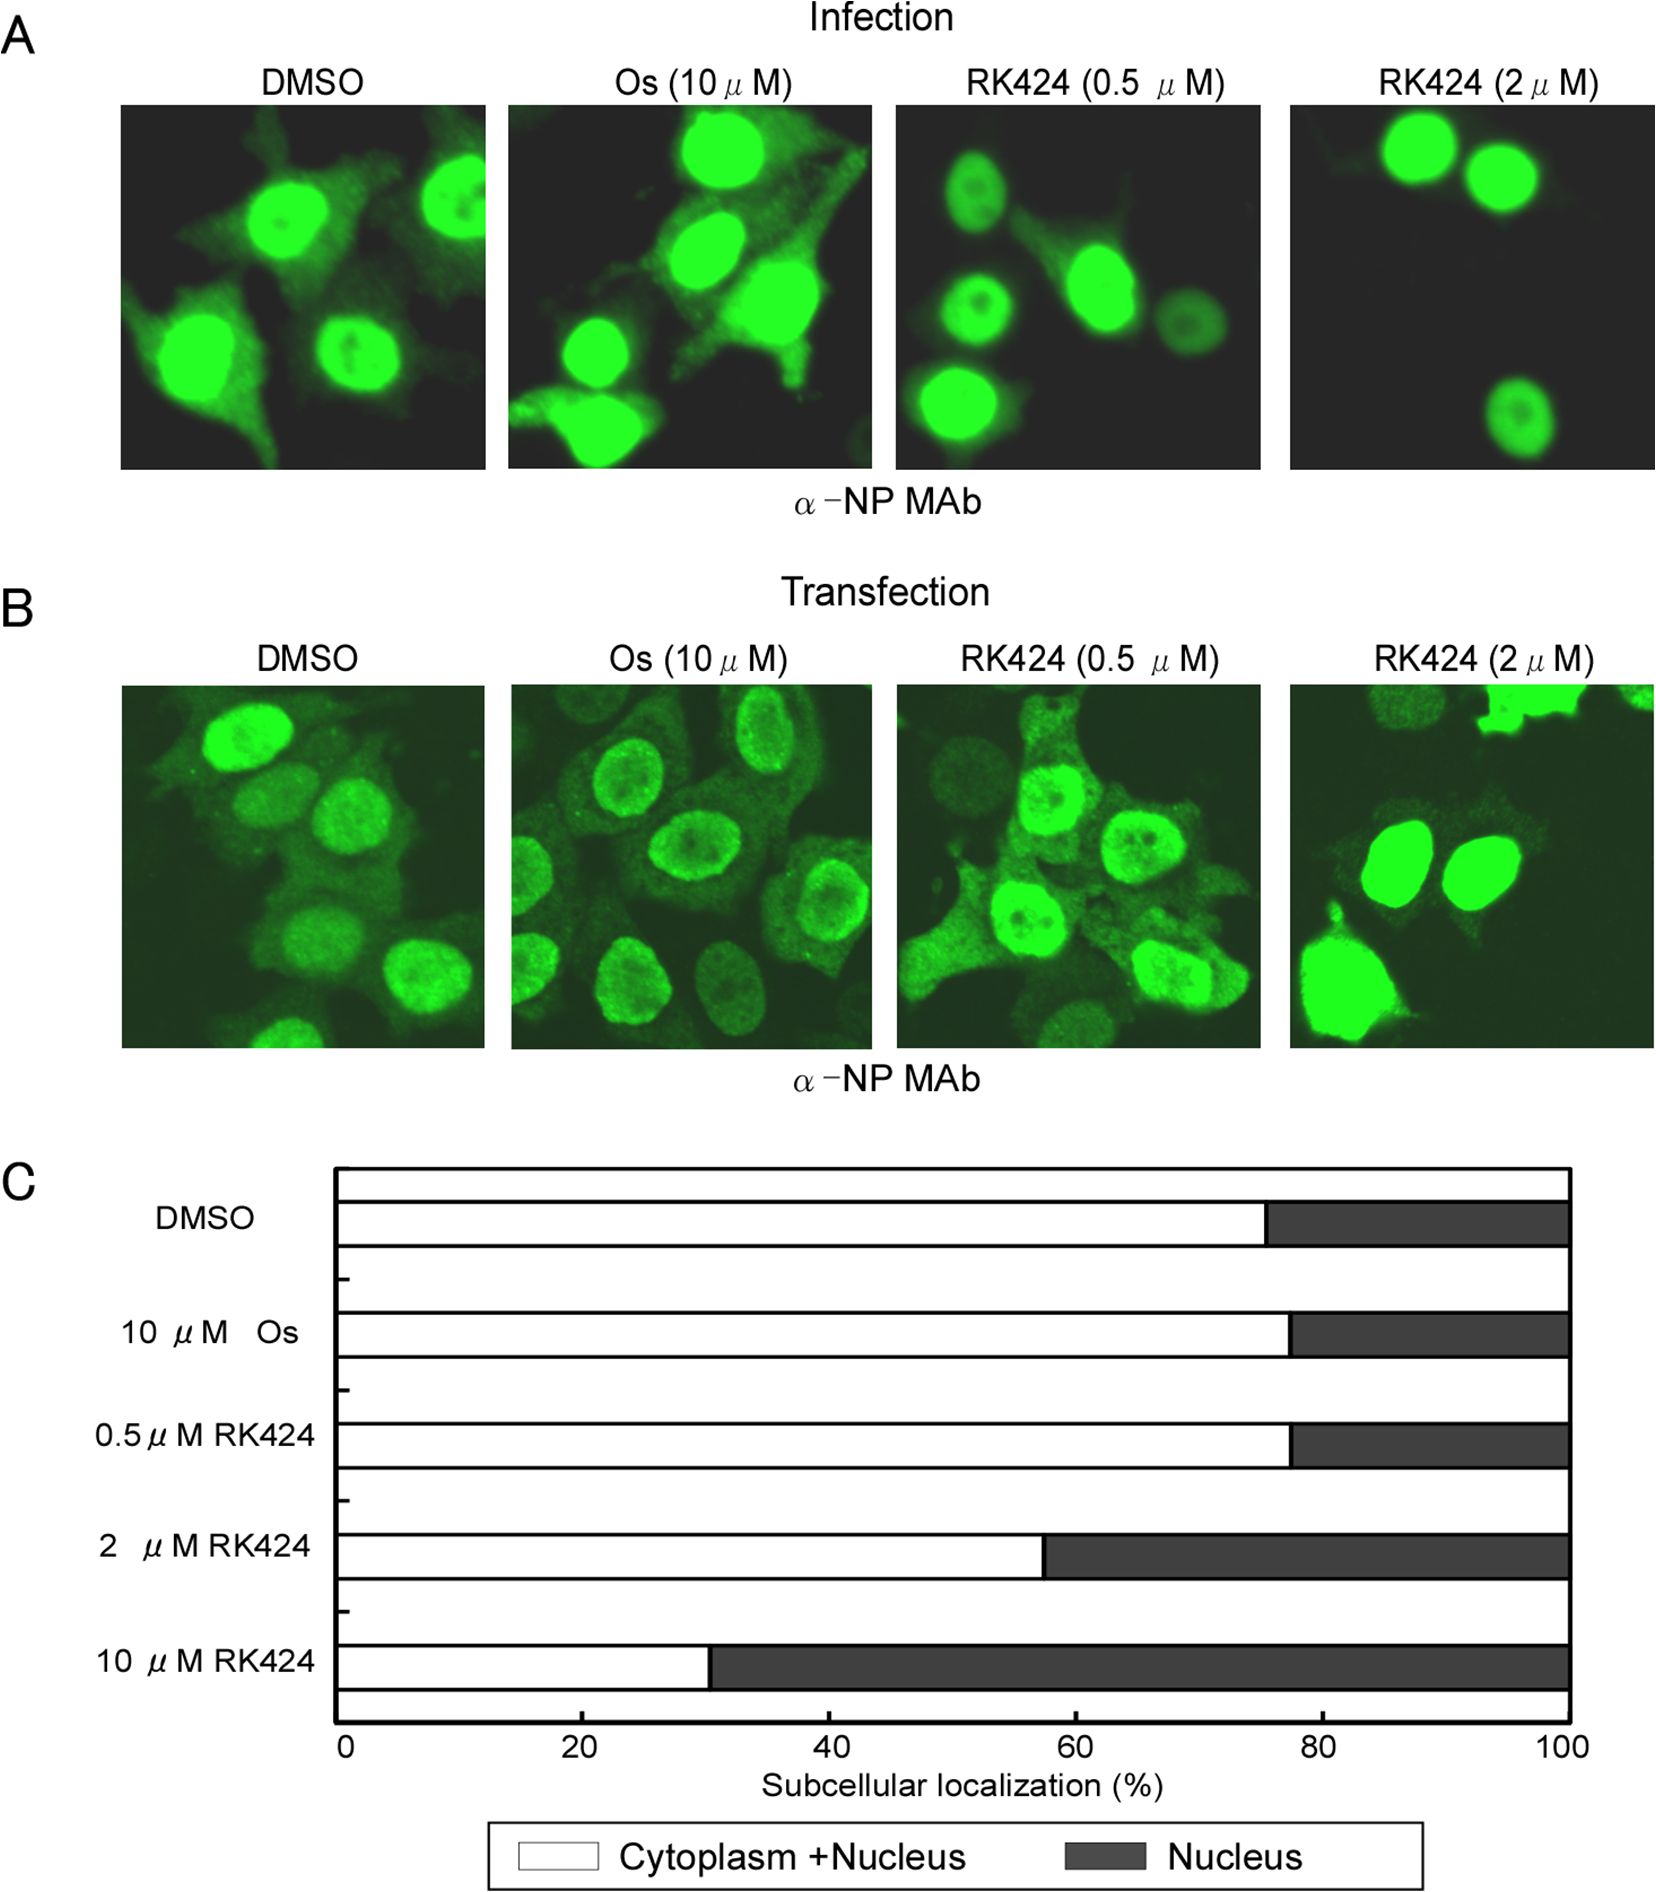 Effect of RK424 on cytoplasmic localization of NP.